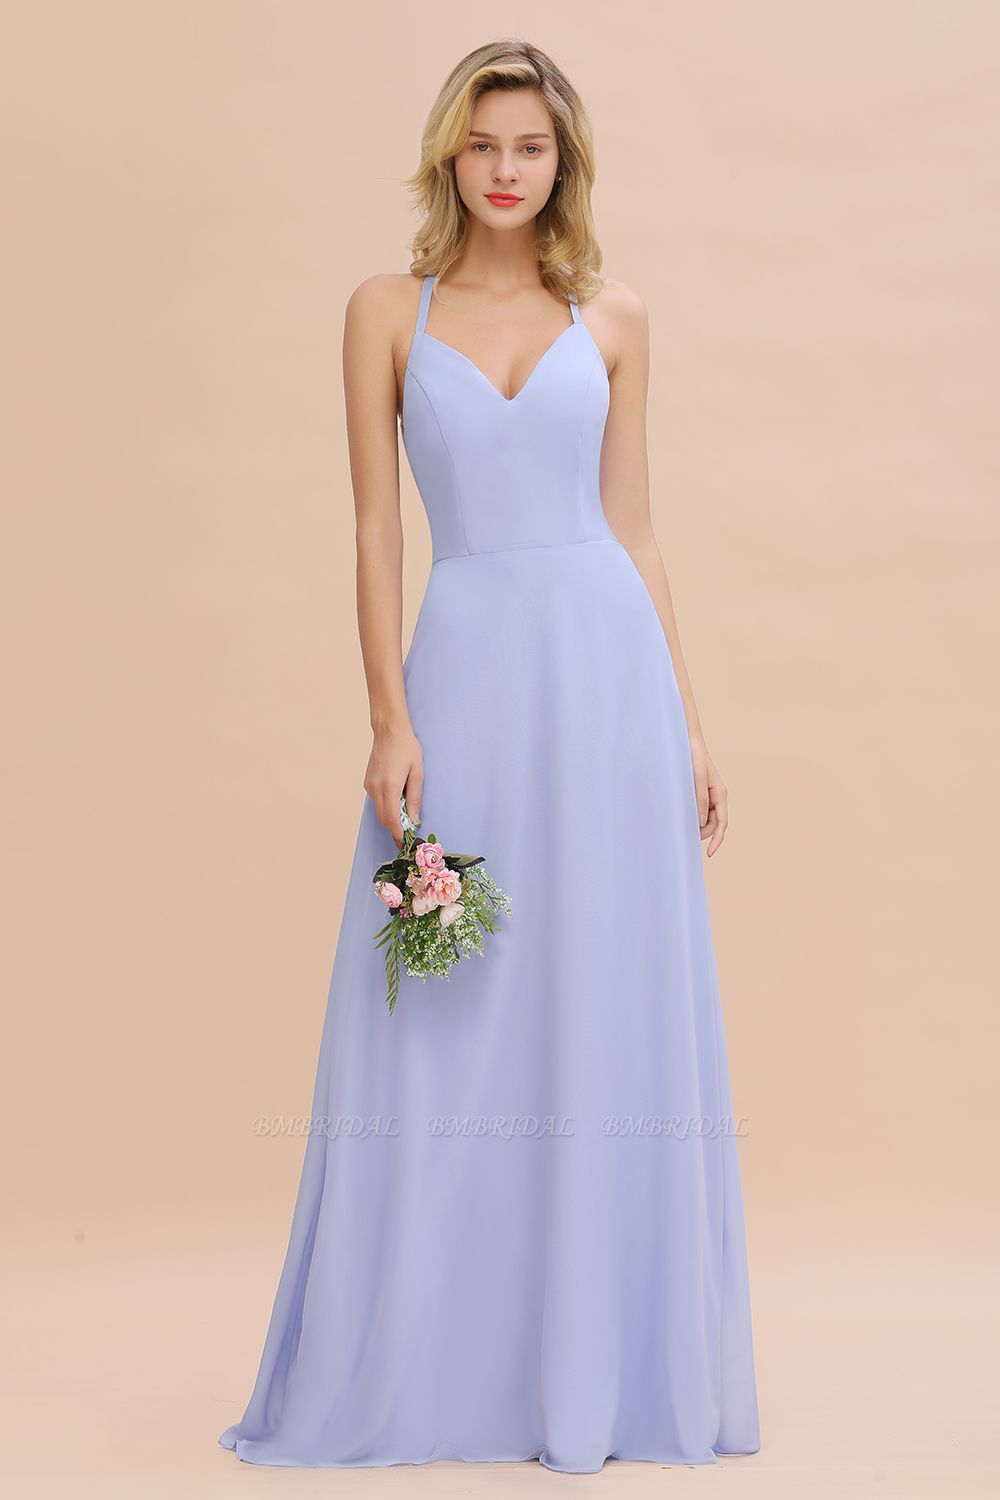 Modest Halter V-Neck Sleeveless Long Bridesmaid Dresses Online